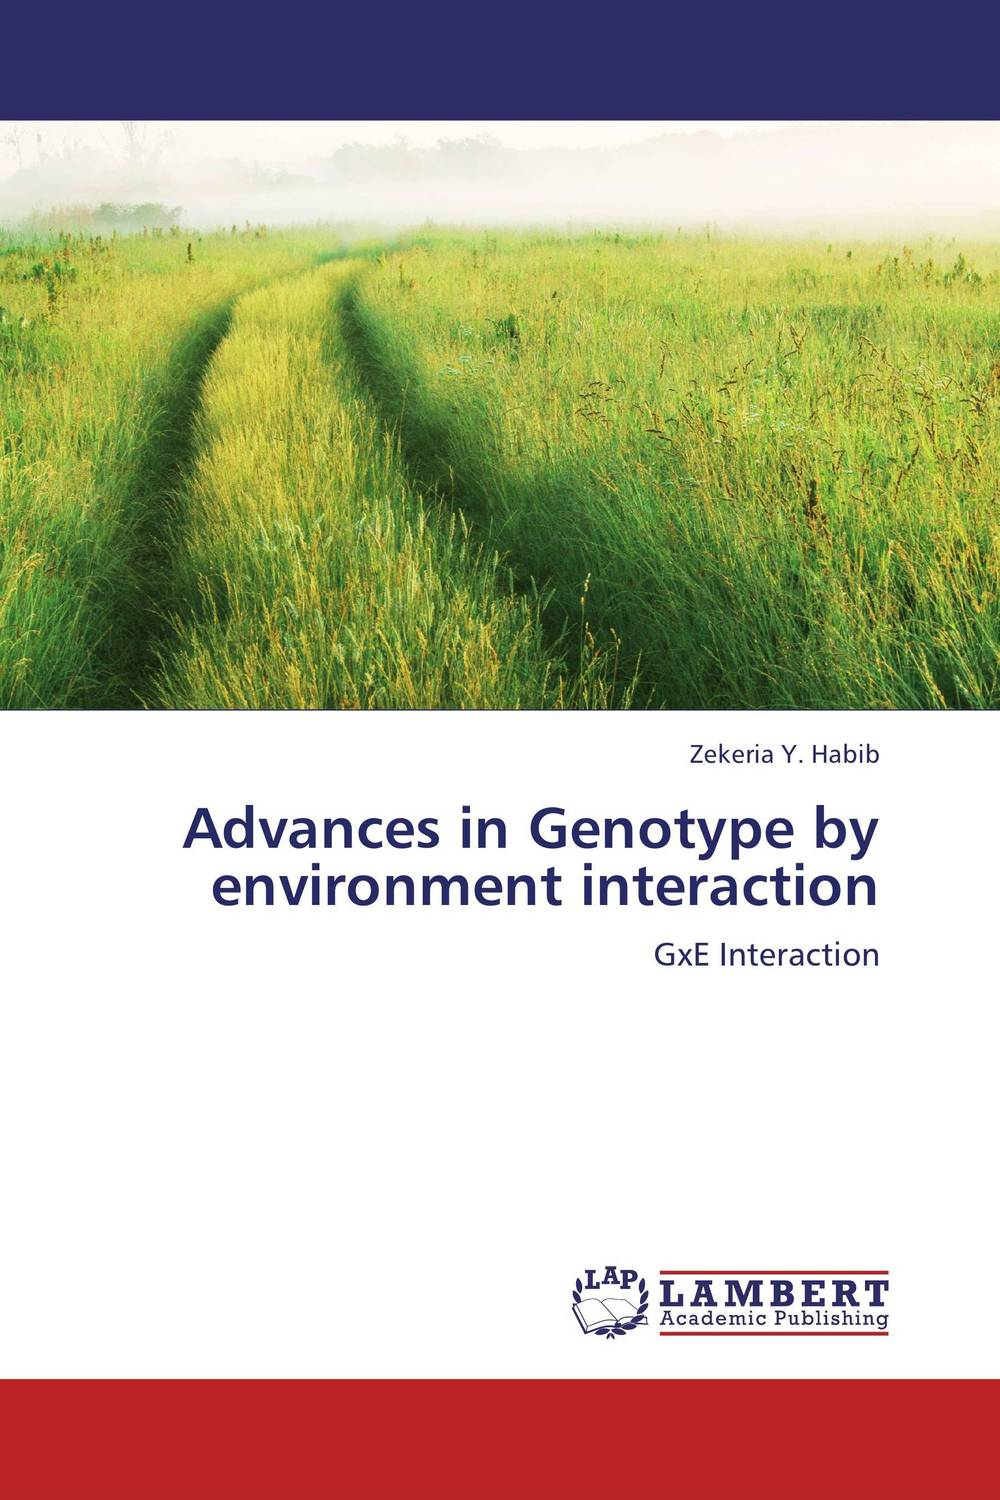 Advances in Genotype by environment interaction wheat breeding for rust resistance